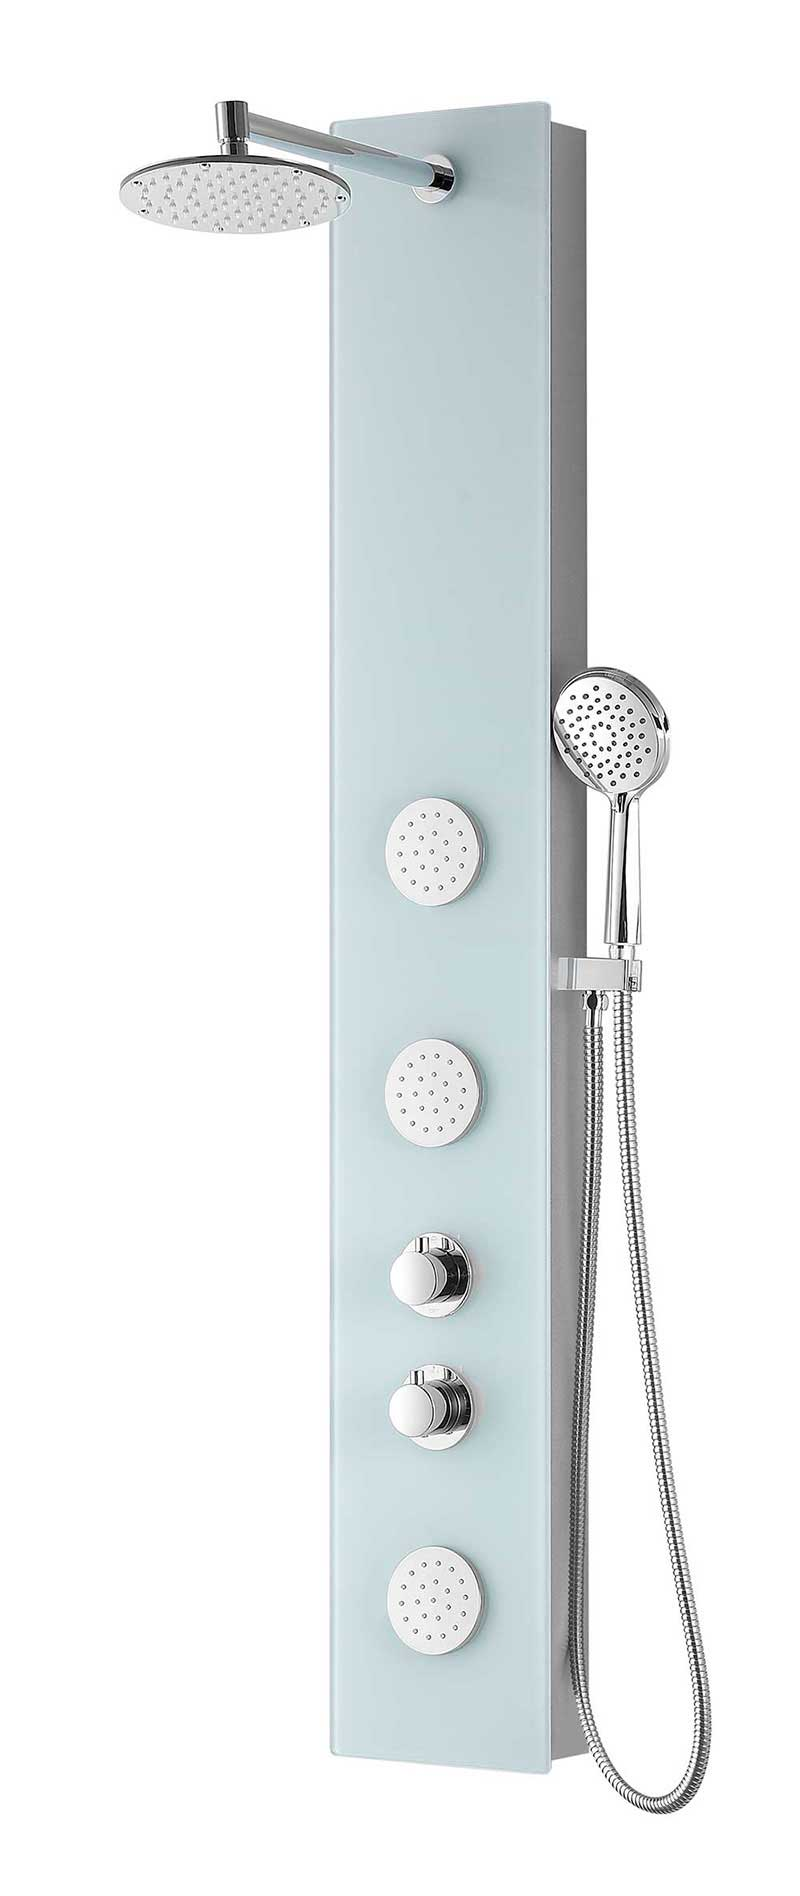 Anzzi MARE Series 60 in. Full Body Shower Panel System with Heavy Rain Shower and Spray Wand in White